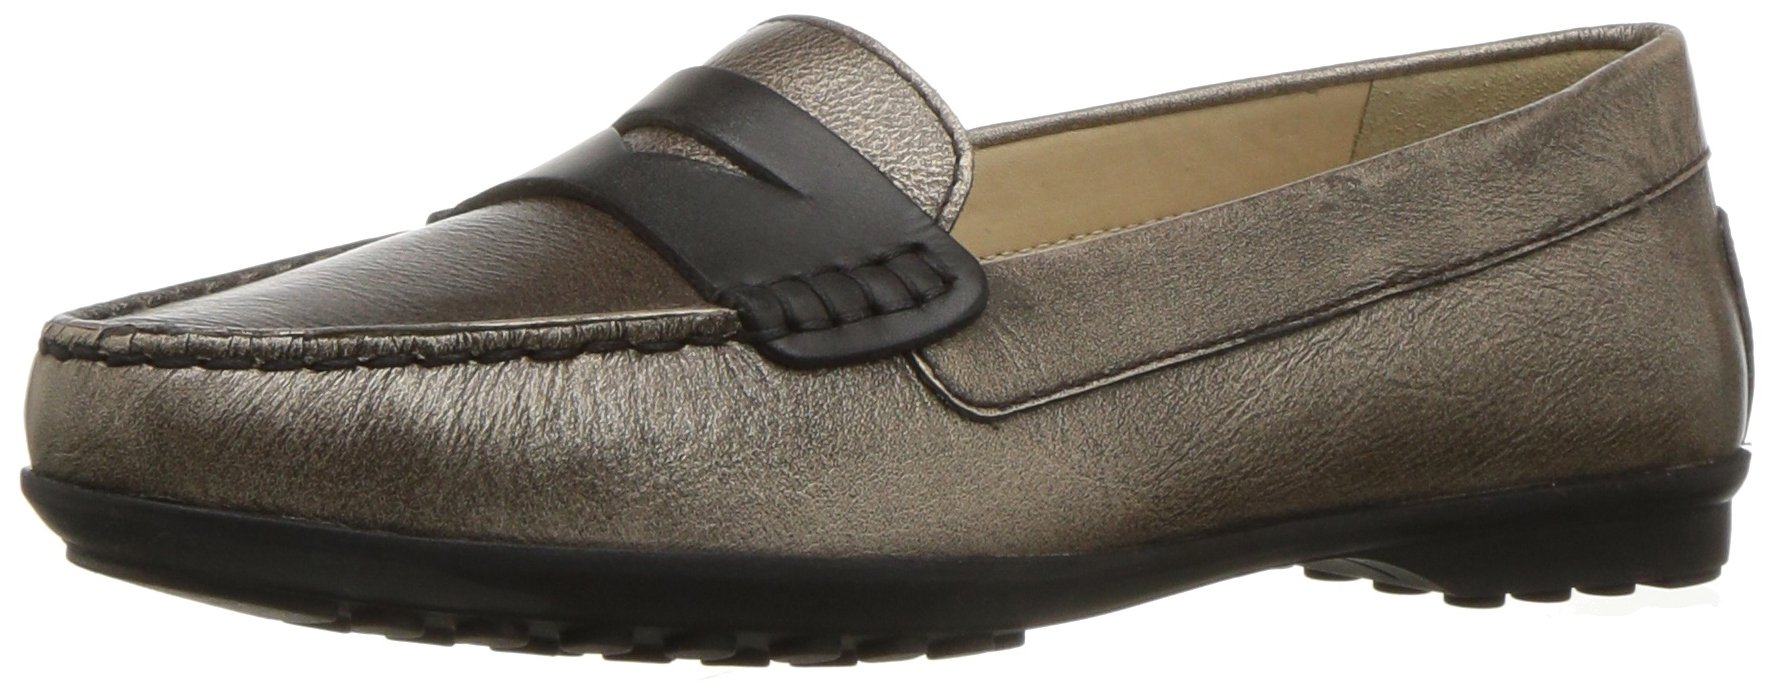 Geox Women's Elidia 5 Slip-on Loafer, Champagne/Anthracite, 35 EU/5 M US